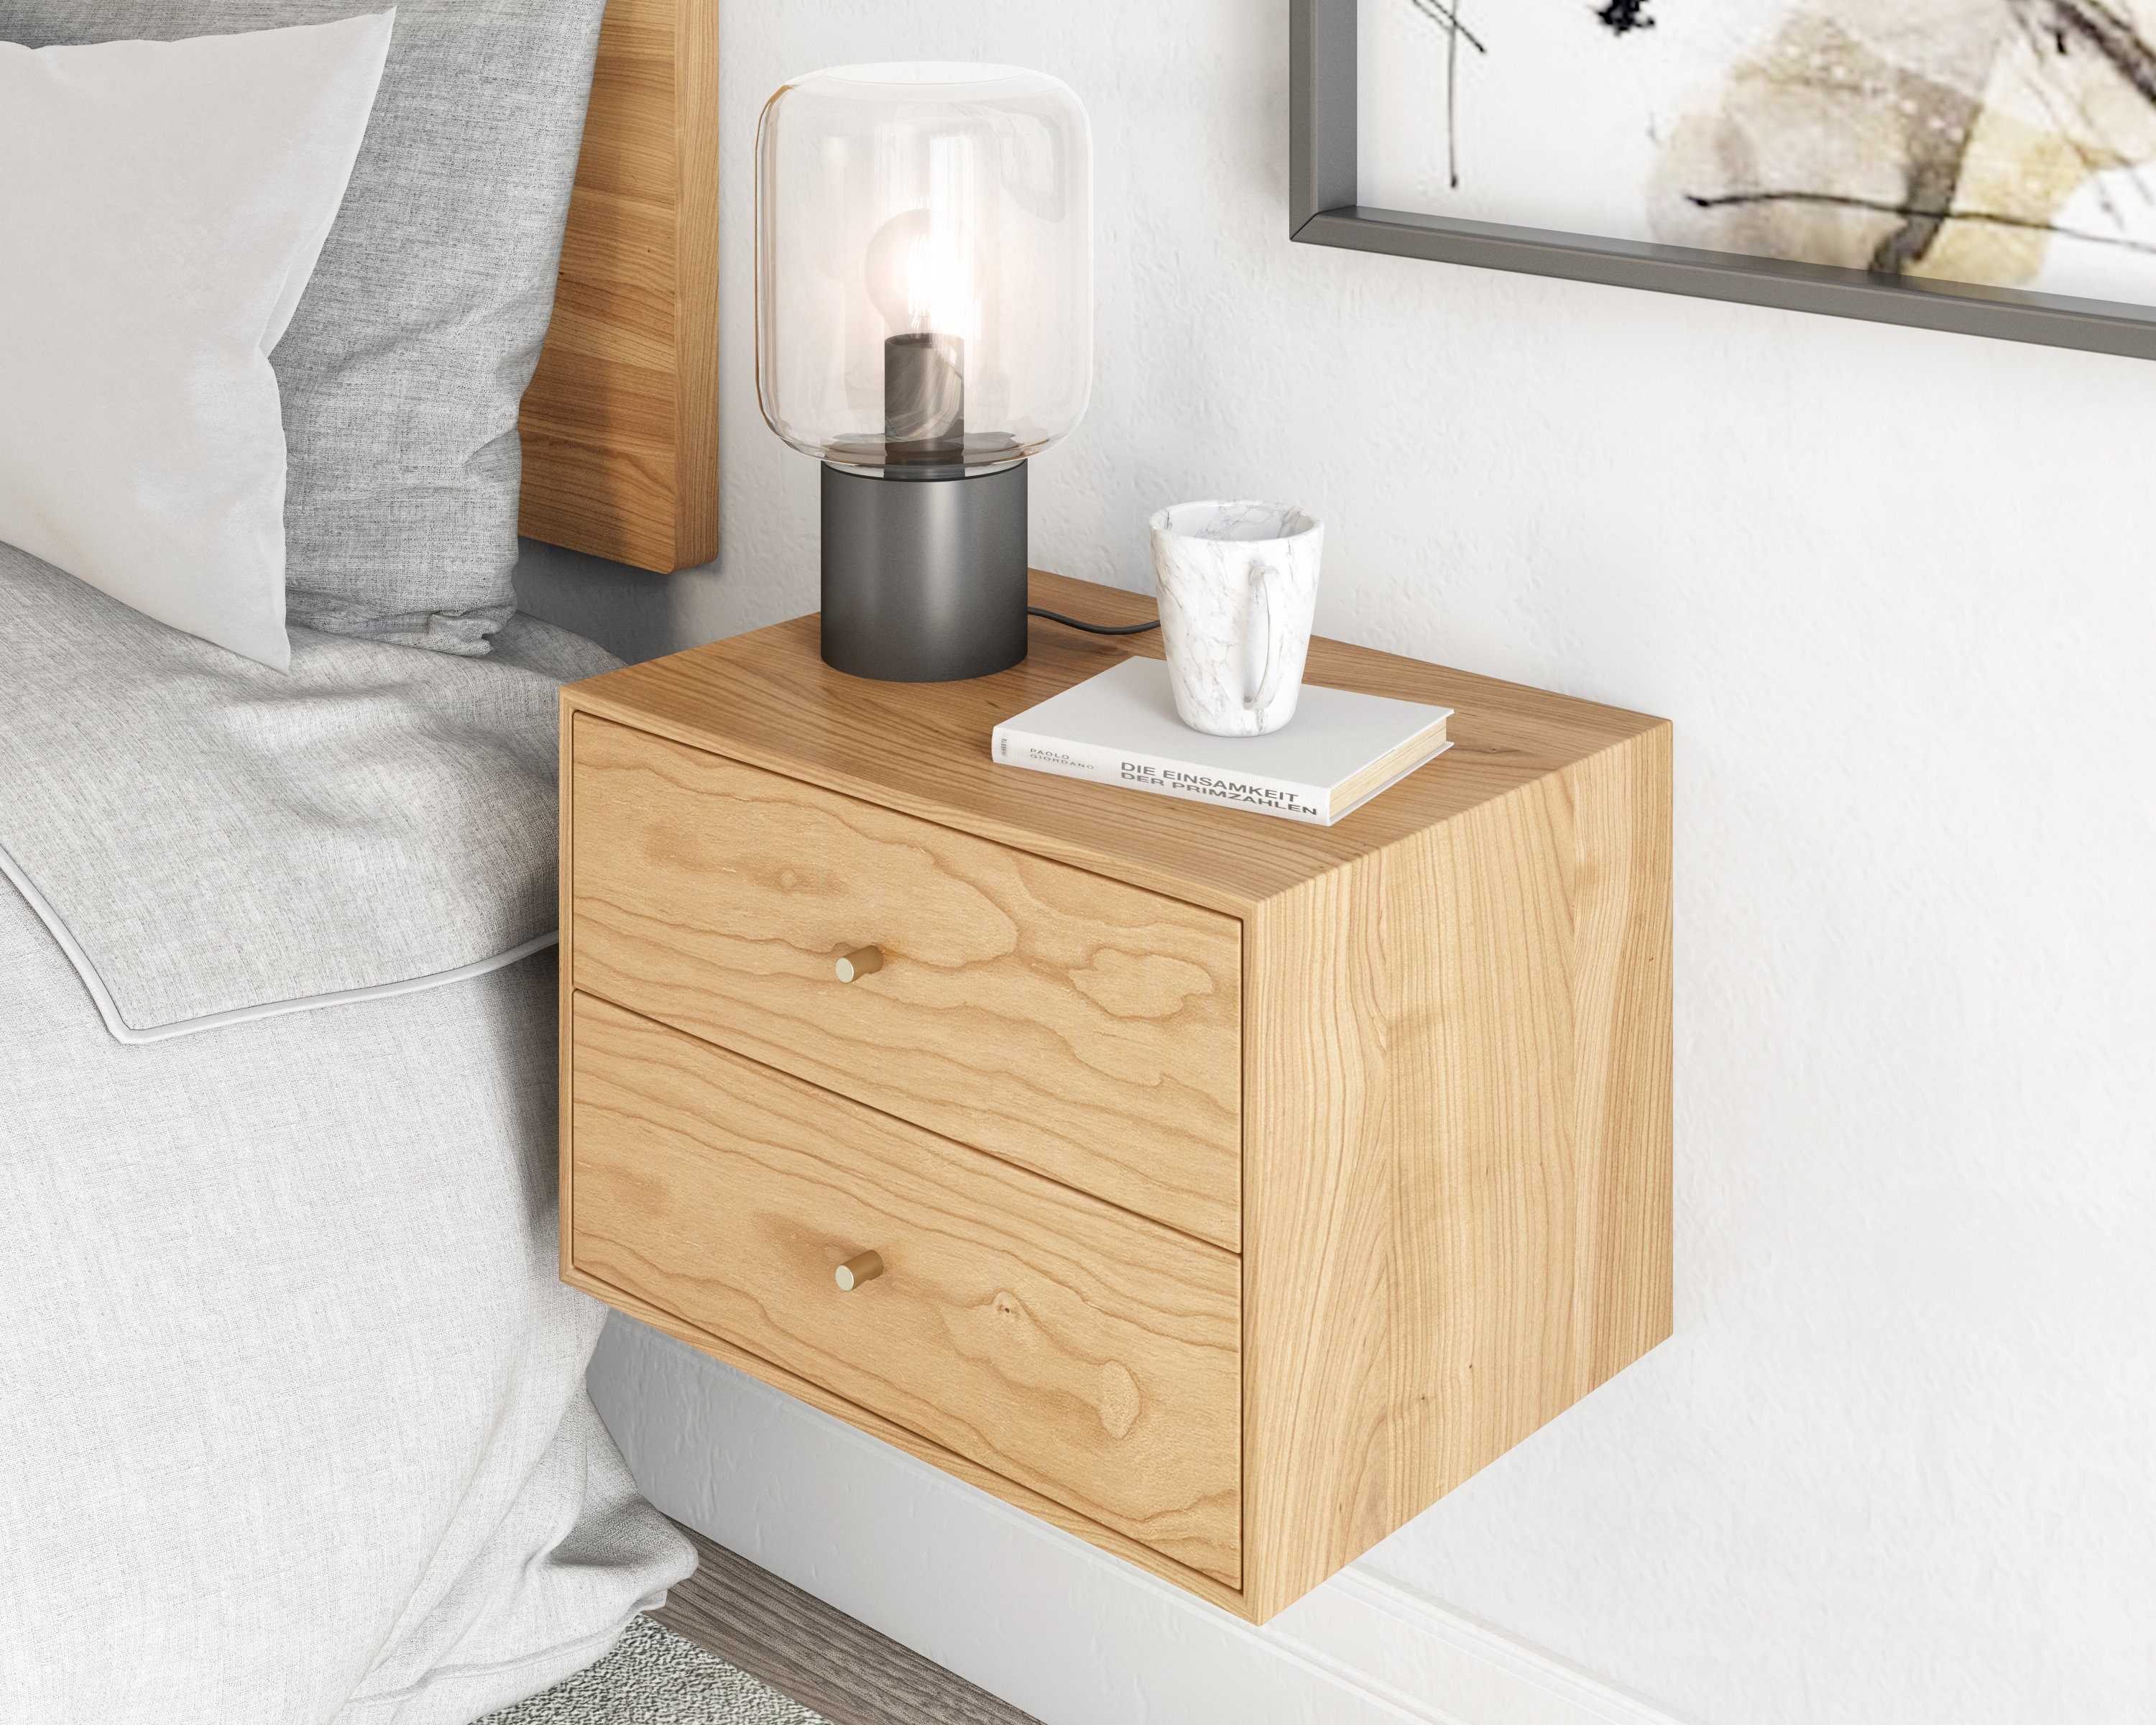 Floating Nightstand With 2 Drawers In Solid Cherry Mid Century Modern Bedside Table Minimalist